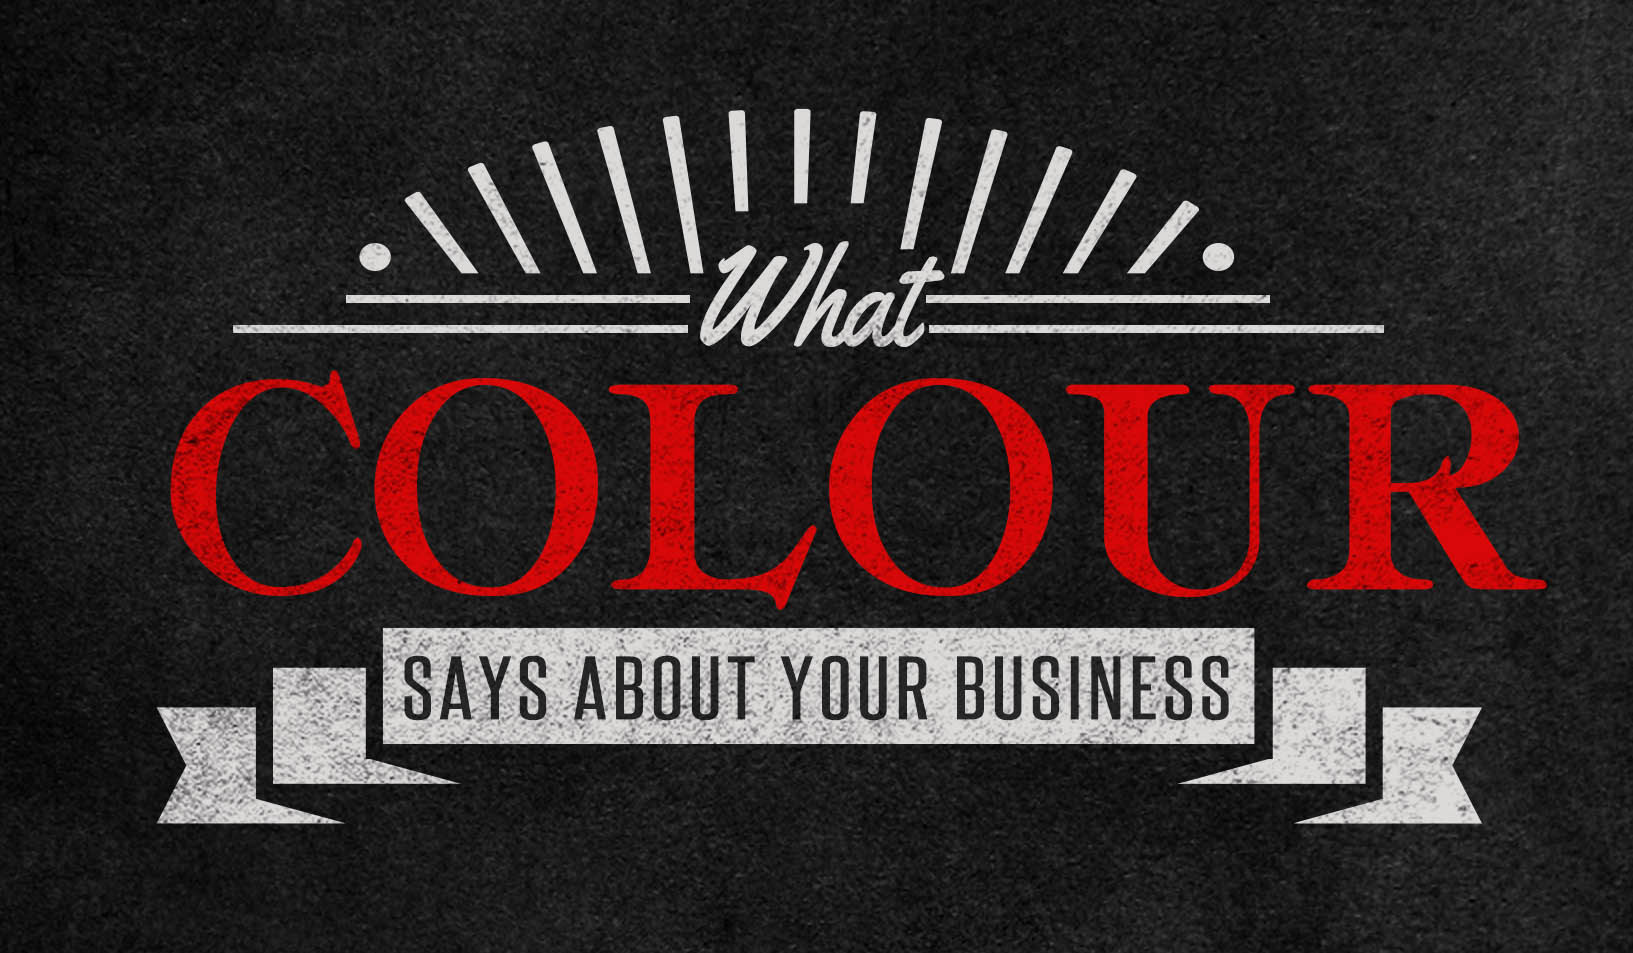 What colour says about your business.